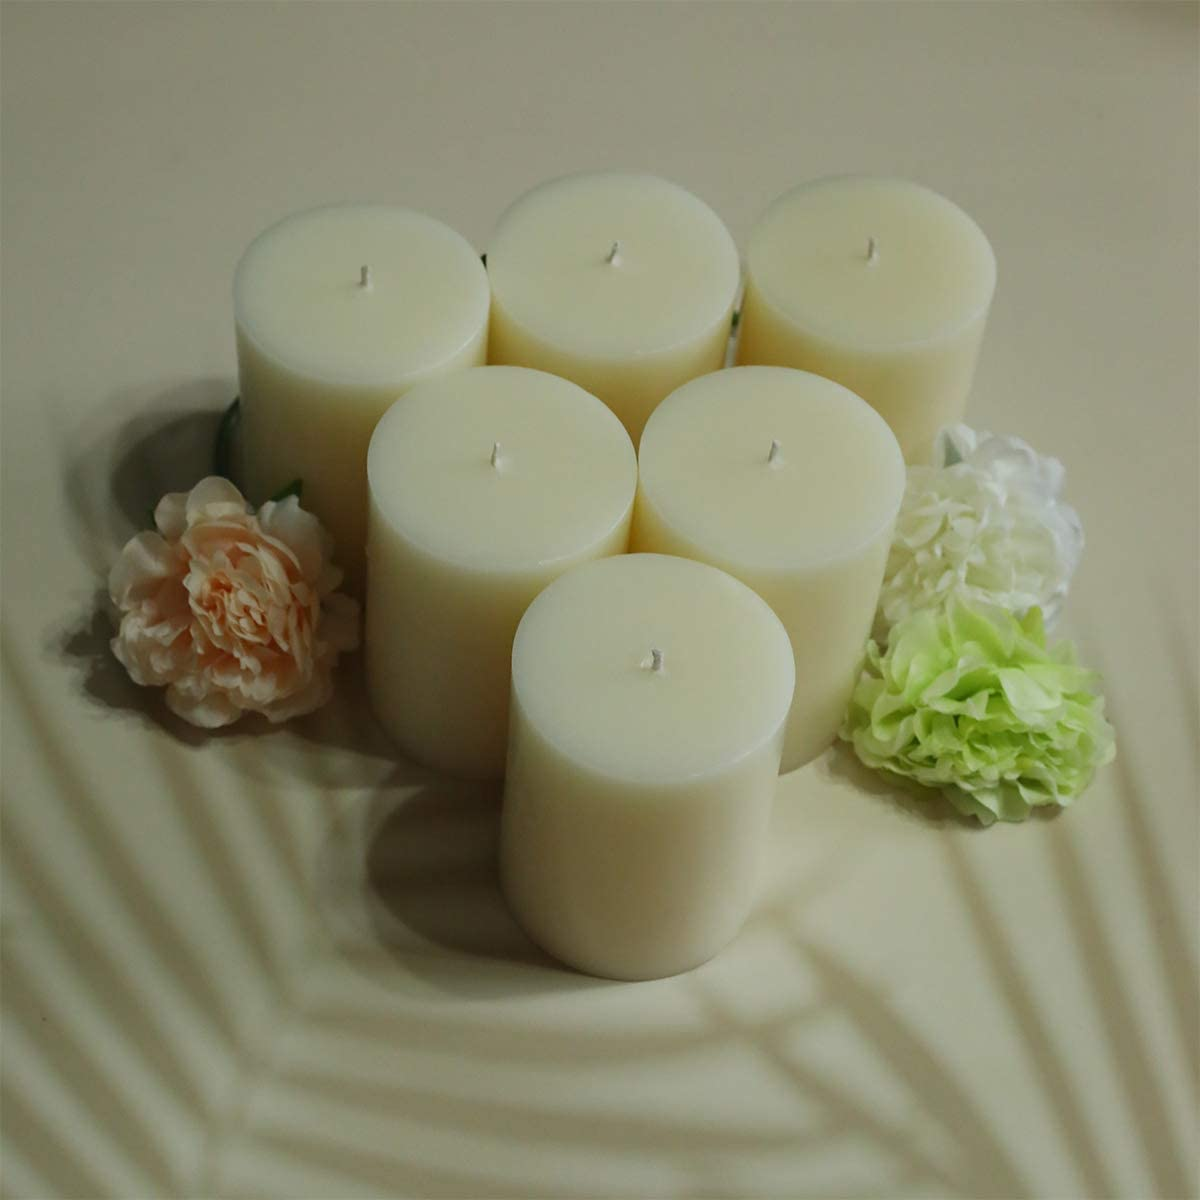 3x4 Pillar Candles Cotton Ivory Vanilla Scented Candles Long Burn Pillar Candles Pillar Candles for Home Cotton Wick Scent Free Paraffin Wax Slow Burning 2 Pack